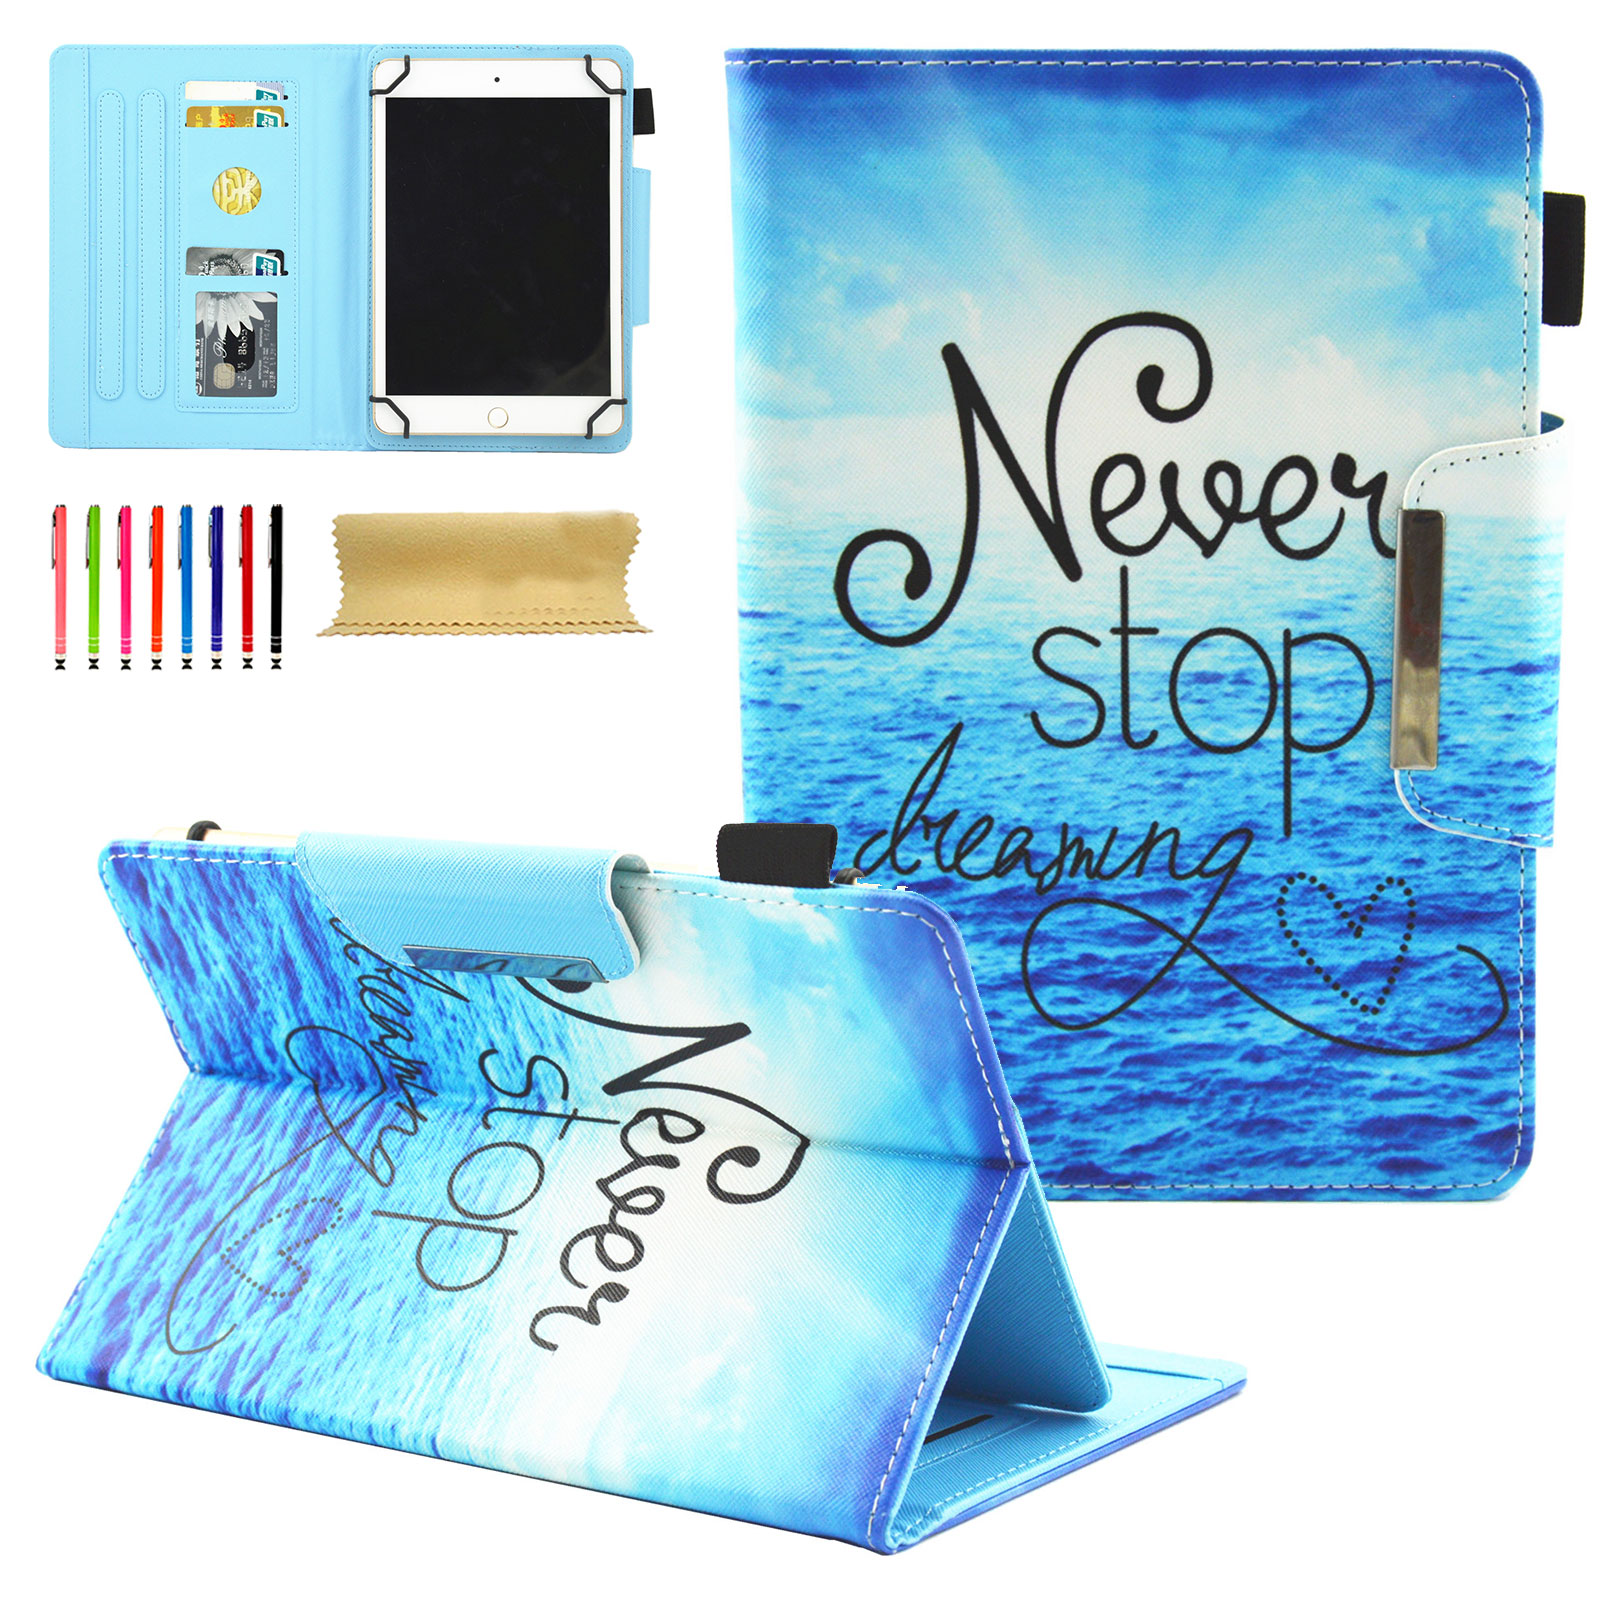 Universal Folio Case for All 6 - 7 inch Tablet, Goodest PU Leather Stand Cover for Kindle Paperwhite,Fire 7,HDX7,Samsung Galaxy Tab,eBook Reader,Nexus & Nexus FHD,Dragon Touch,Chromo, Never Stop